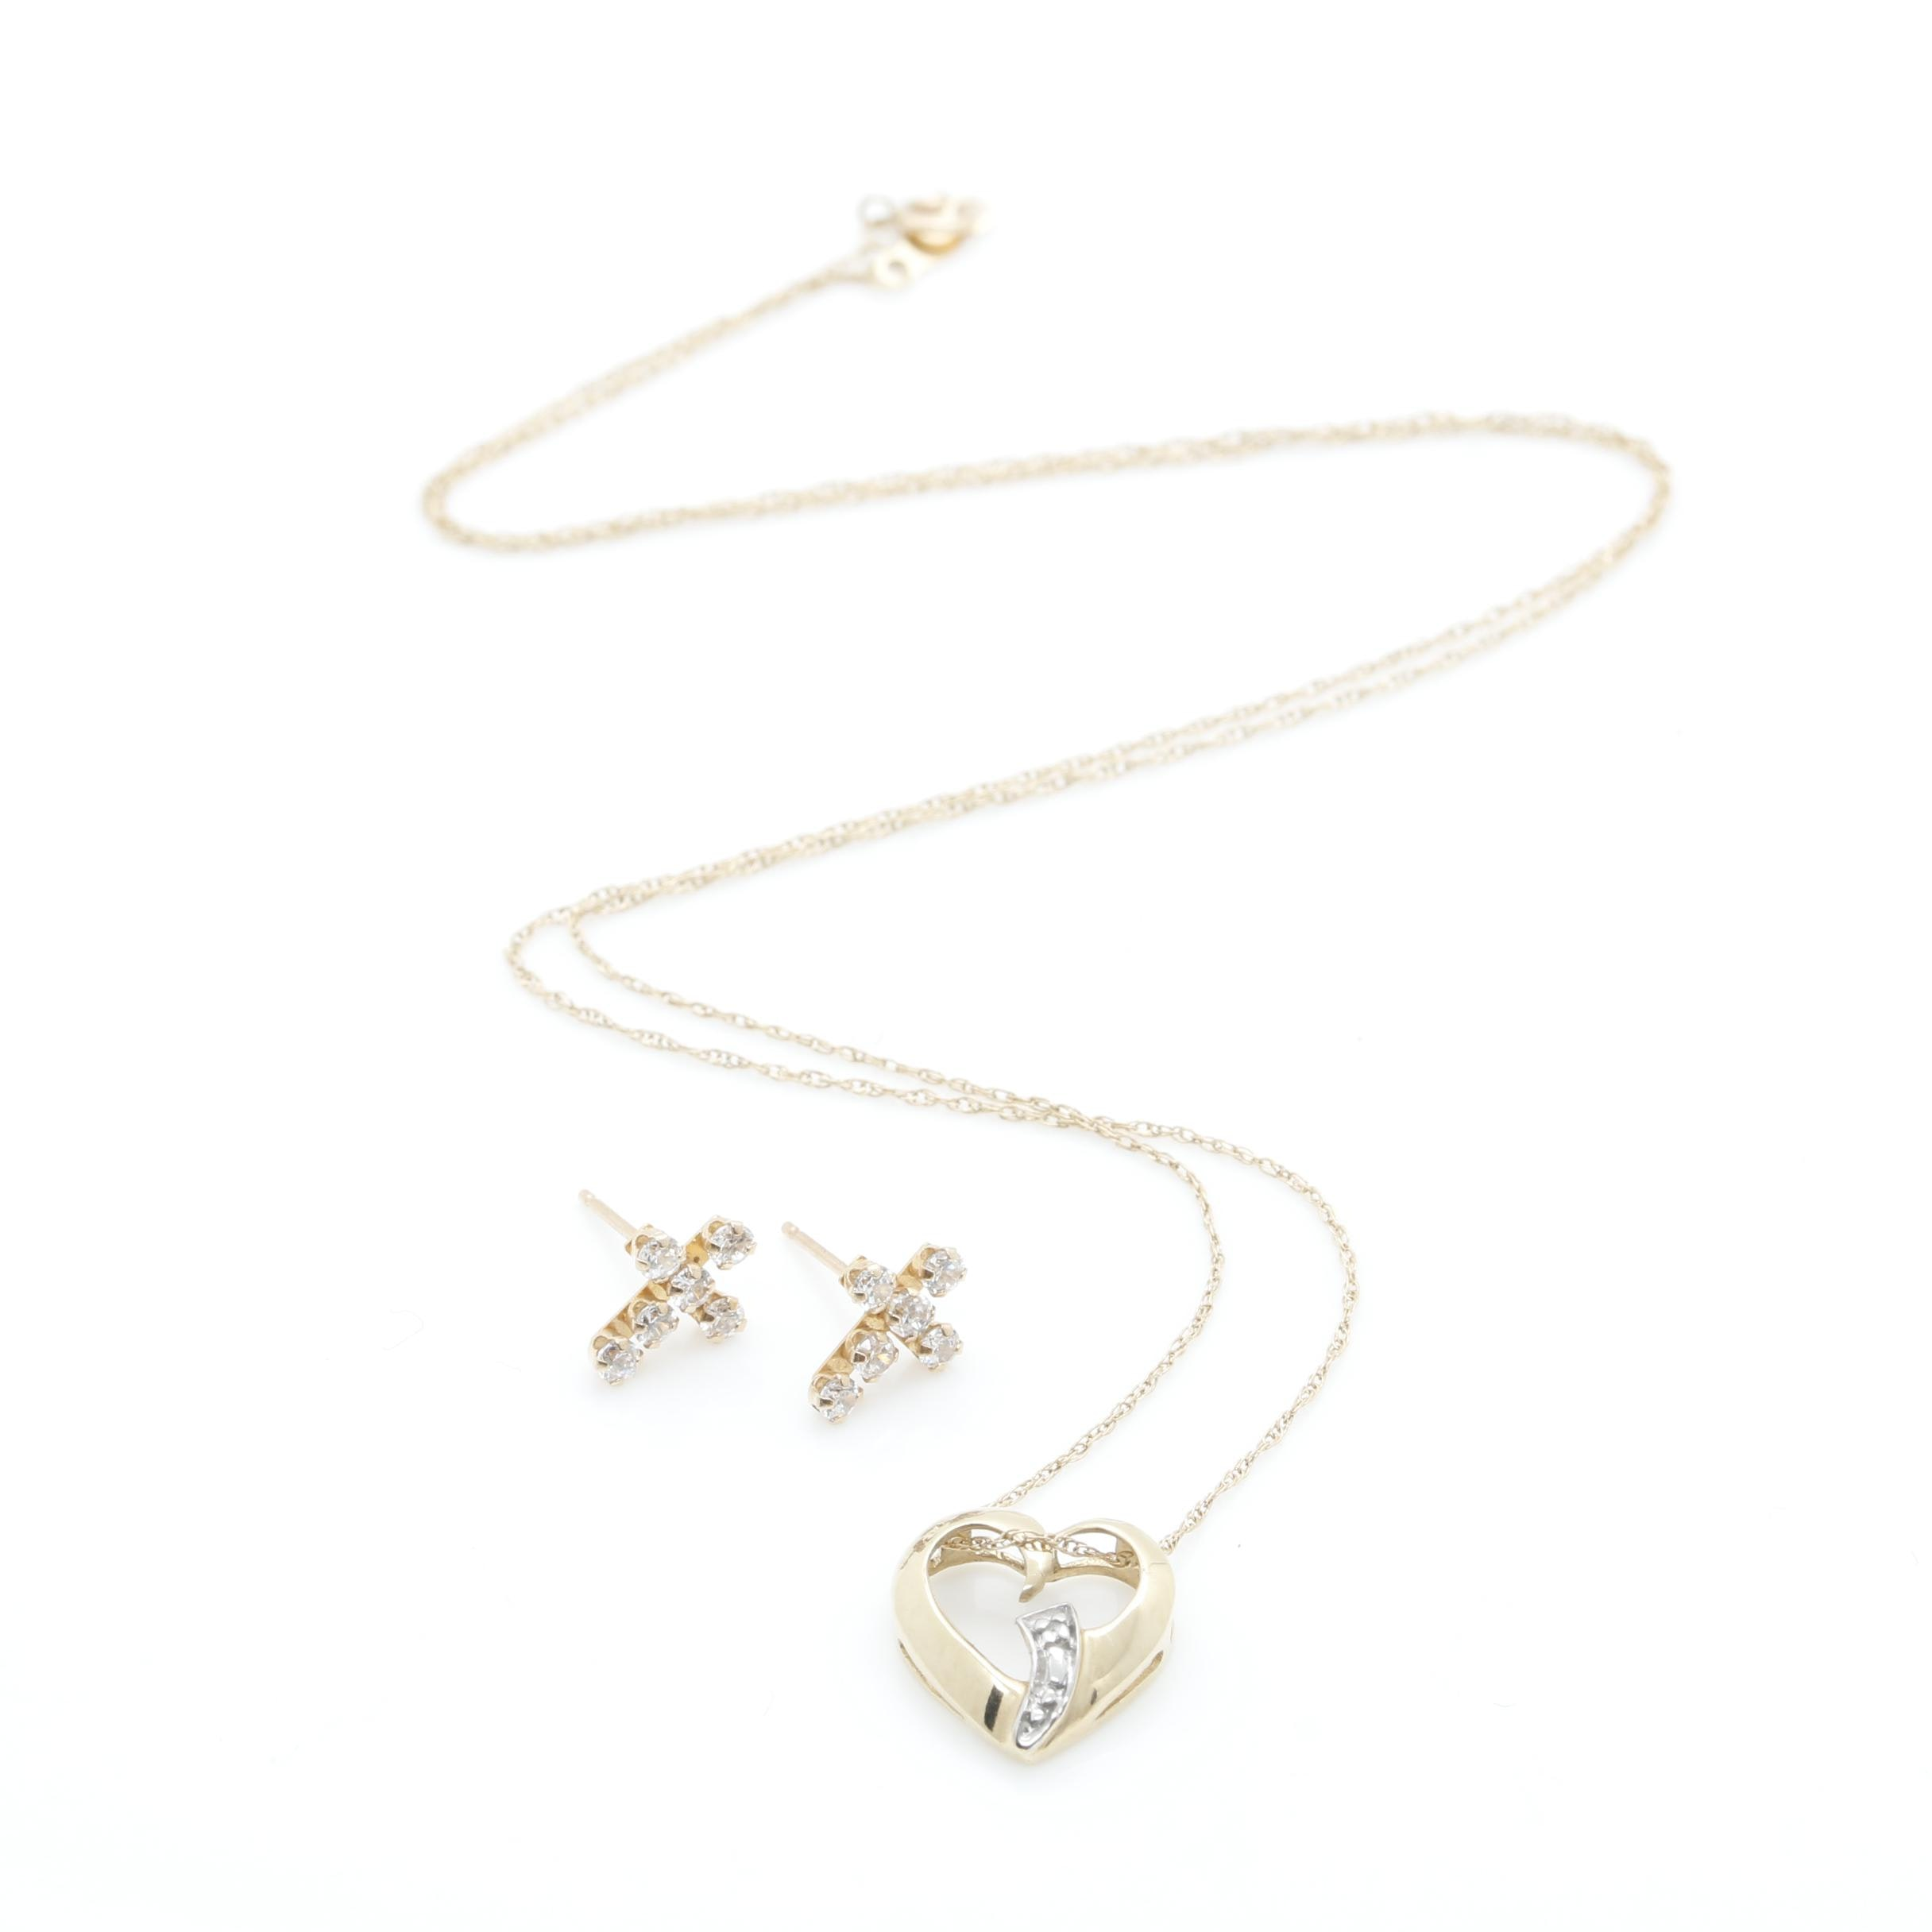 10K Yellow Gold Diamond Necklace and Cubic Zirconia Earrings